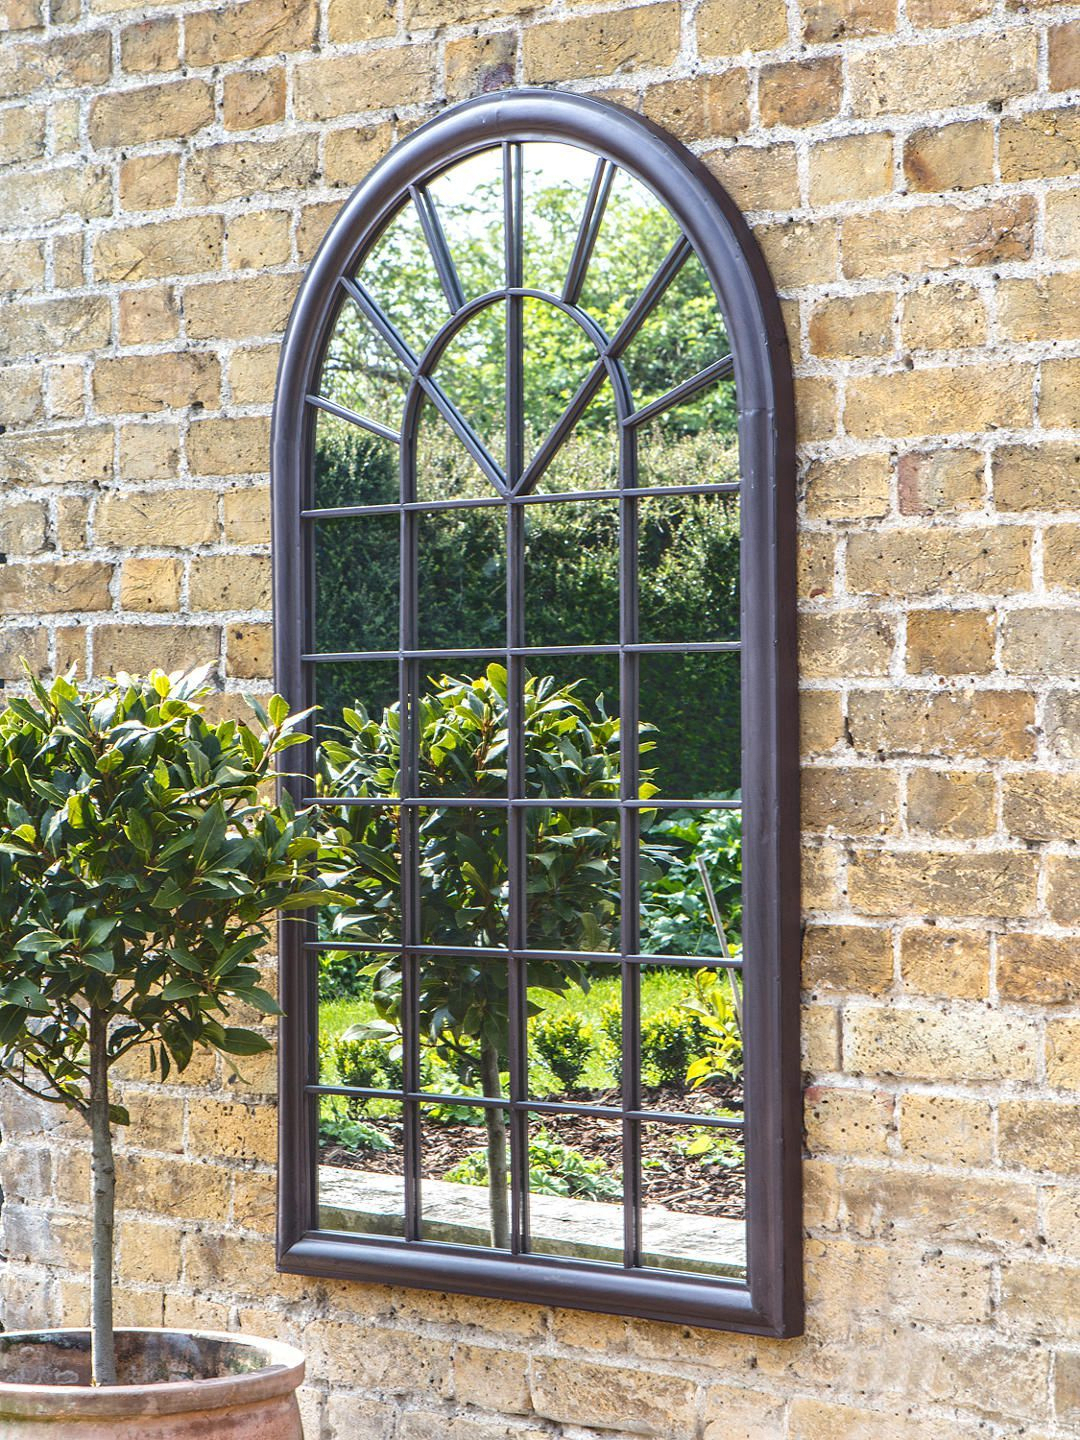 Fura Outdoor Garden Wall Window Style Arched Mirror, 131 X 75Cm, Antique  Bronze Pertaining To Metal Arch Window Wall Mirrors (Image 8 of 20)